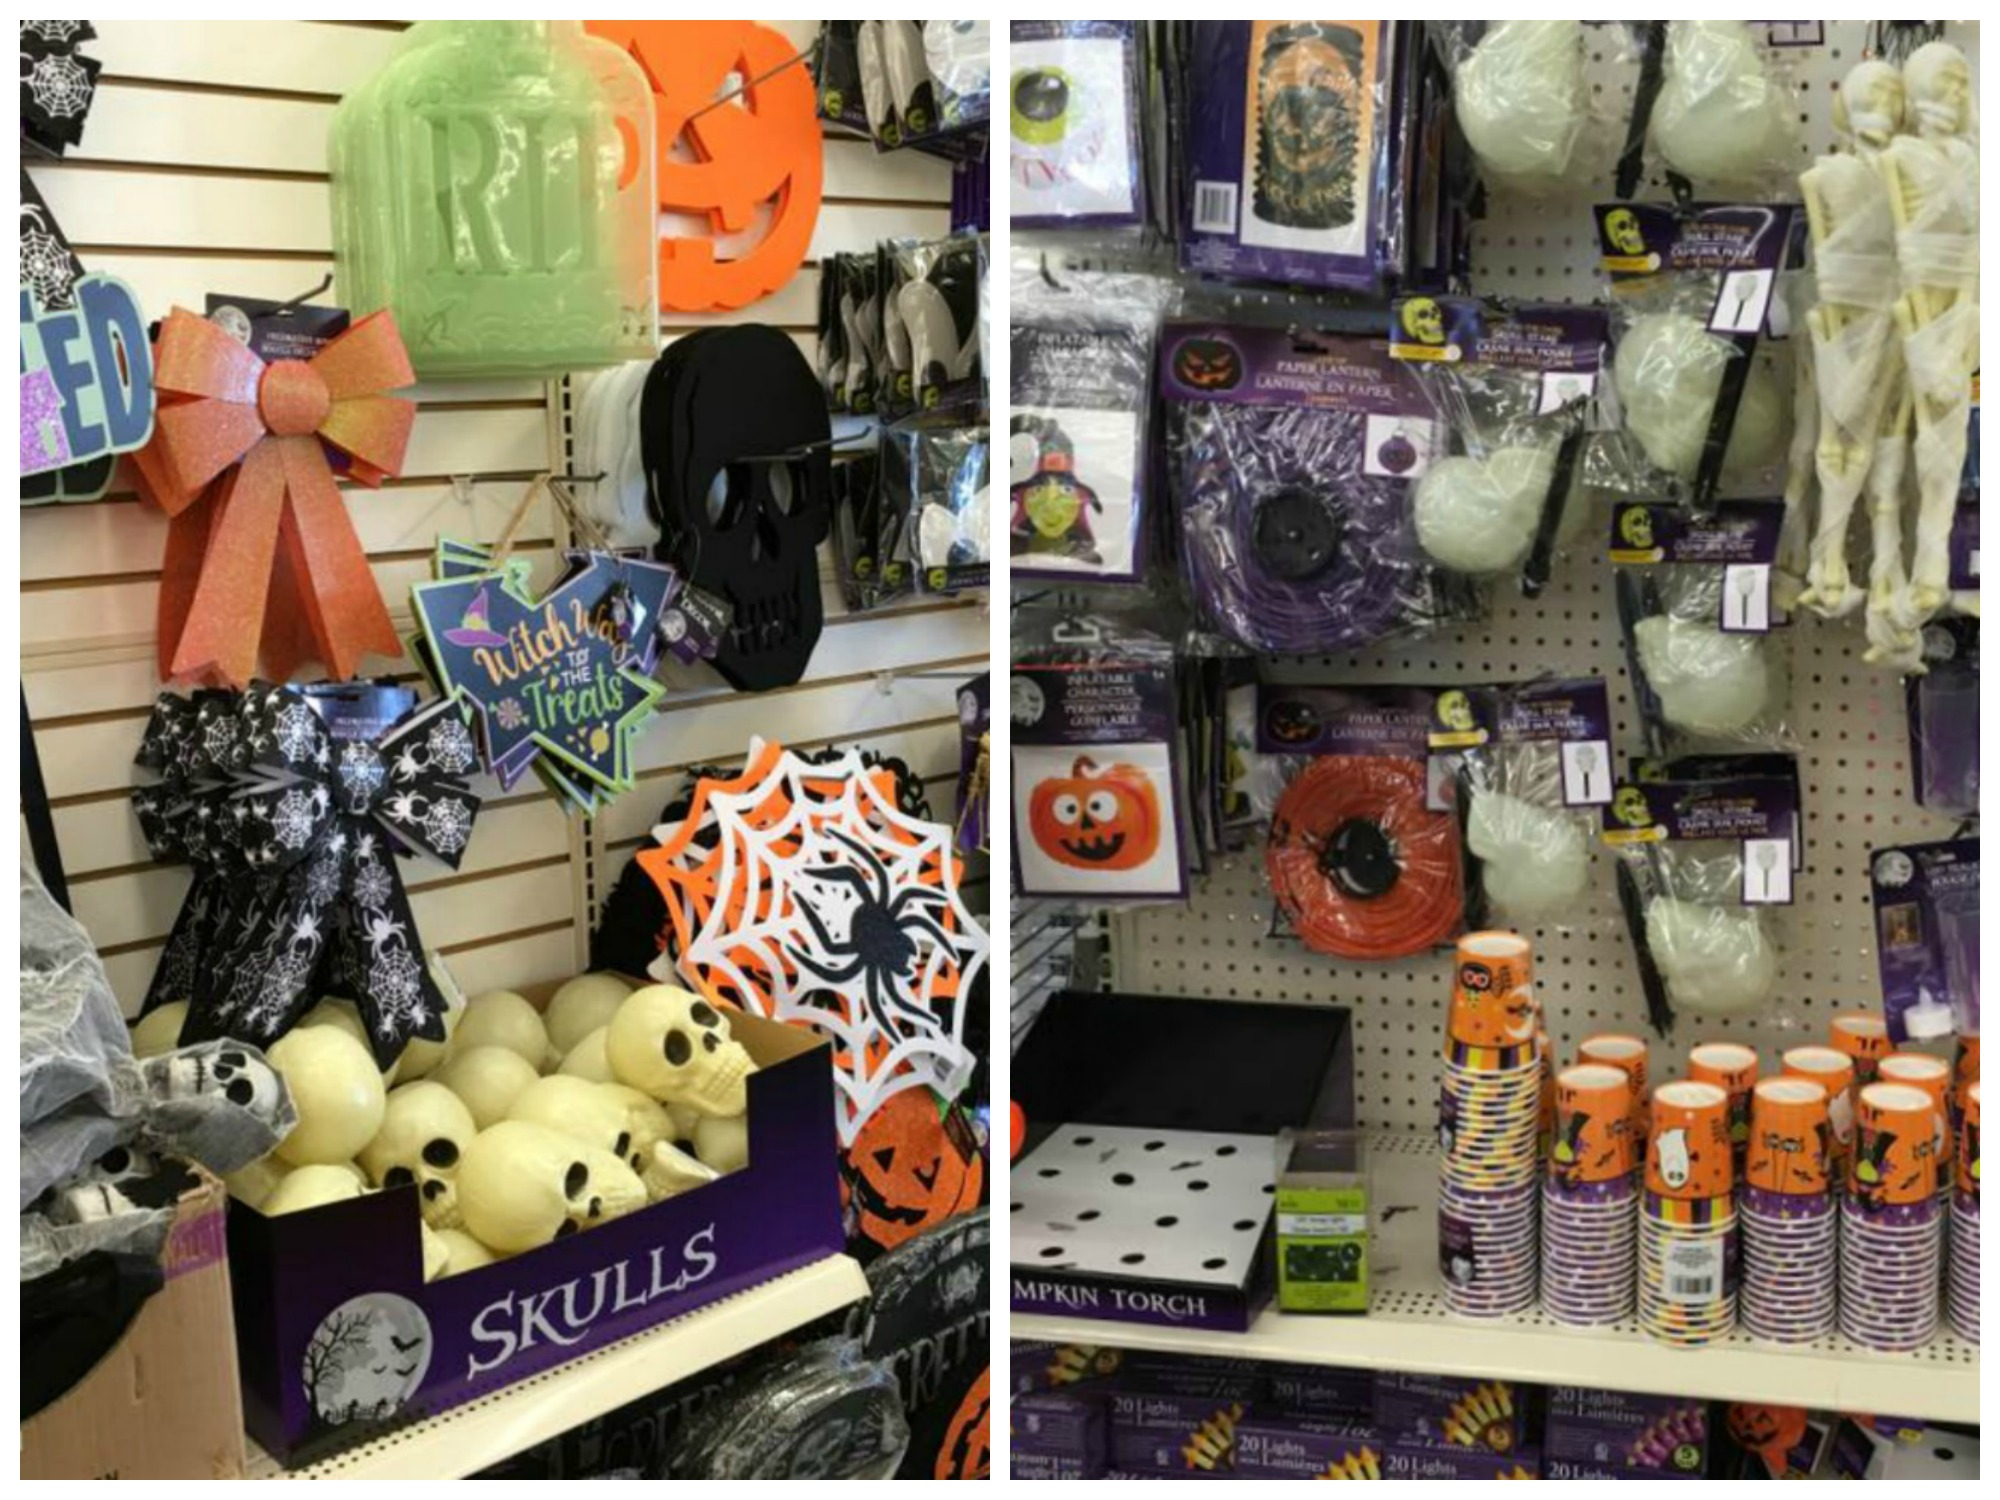 Halloween Decorating From The Dollar Store  Grandma Honey. Cheap Cute Home Decor. Hotel Rooms In Atlanta. Spa Decorating Ideas. Modular Room Addition Cost. Dining Room For Sale. Small Room Air Conditioners. Tall Dining Room Table Sets. Halloween Bathroom Decor Sets